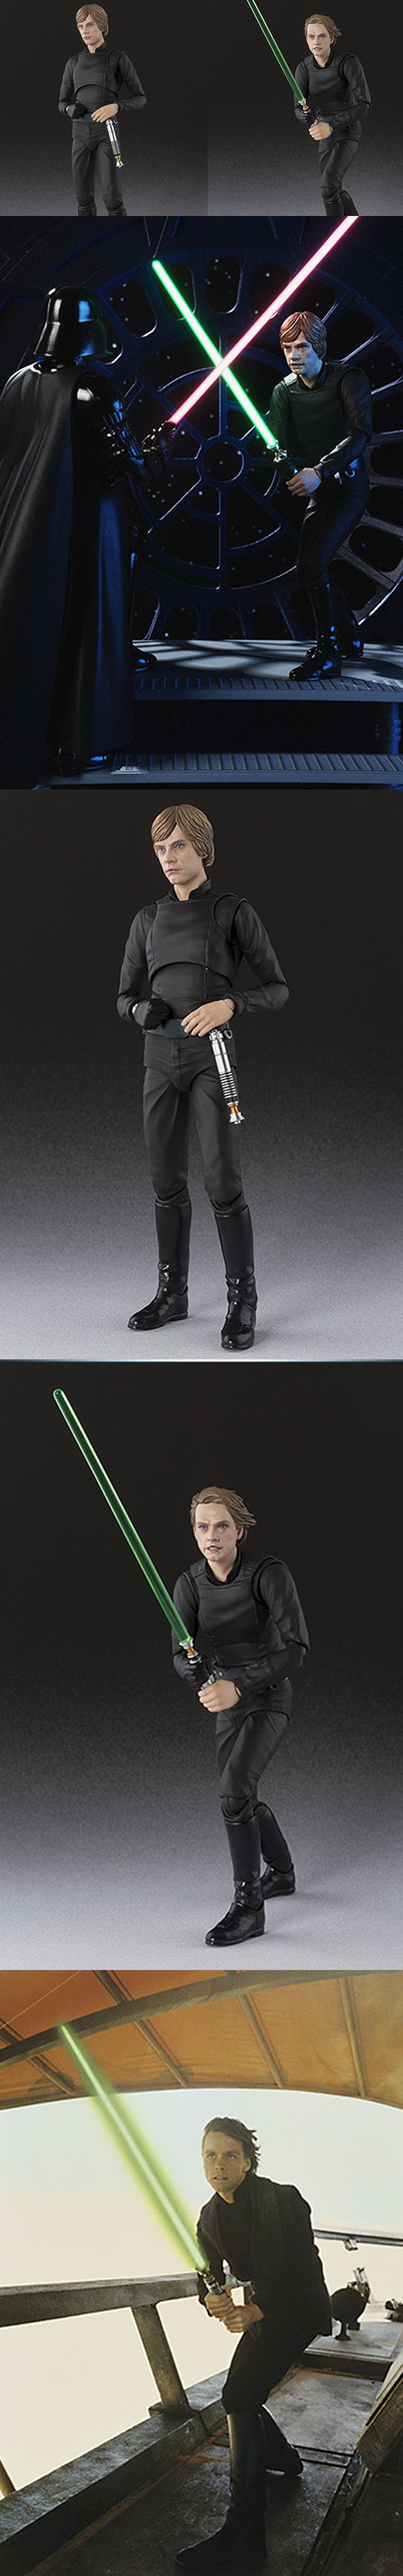 Bandai's Amazing Luke Skywalker Jedi Action Figure Bandai is releasing a series of incredible Star Wars action figures, and so far we've seen a samurai Darth Vader and a samurai Stormtrooper. Now we have one of a Luke Skywalker Jedi action figure based on his look from Star Wars: Return of the Jedi. In fact, you can actually pose the figure the way that you see him on the movie poster. It's pretty damn cool. Read More…